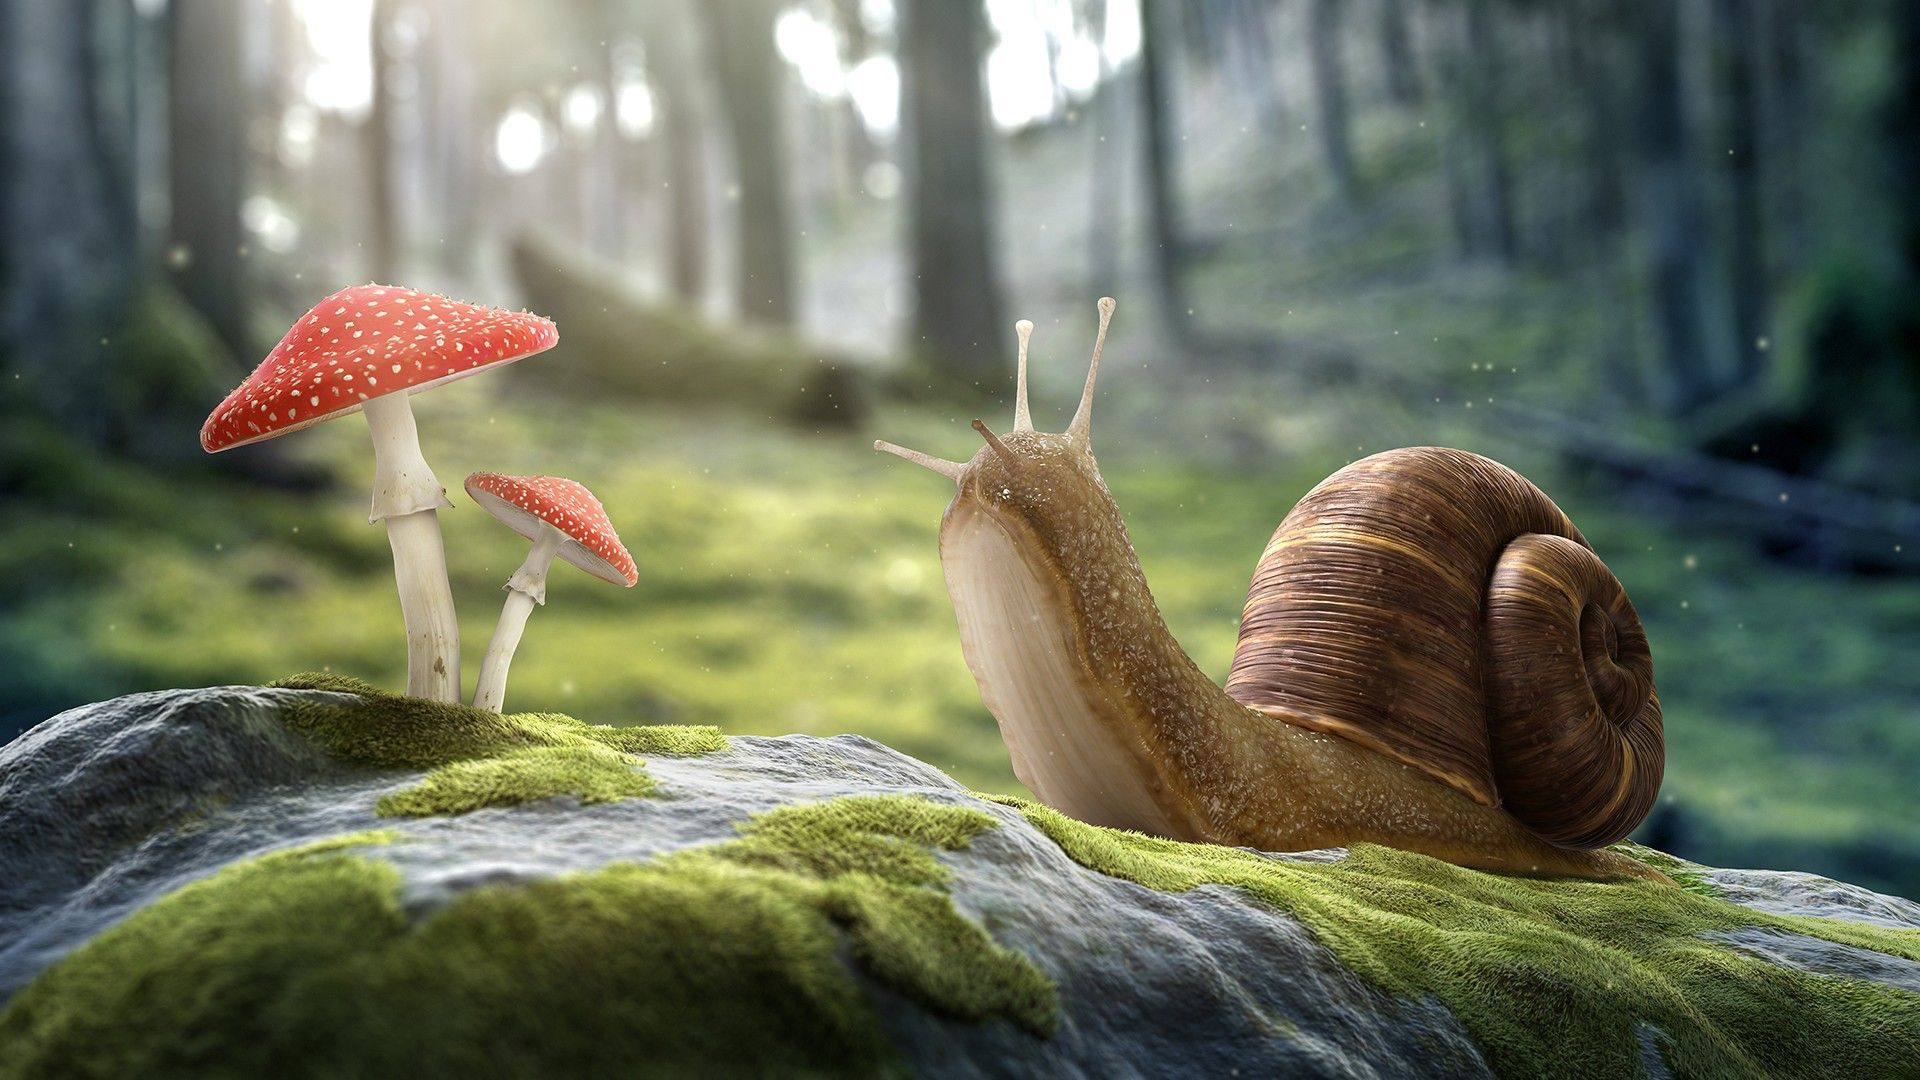 Snail on a stone and fly agaric wallpapers and image